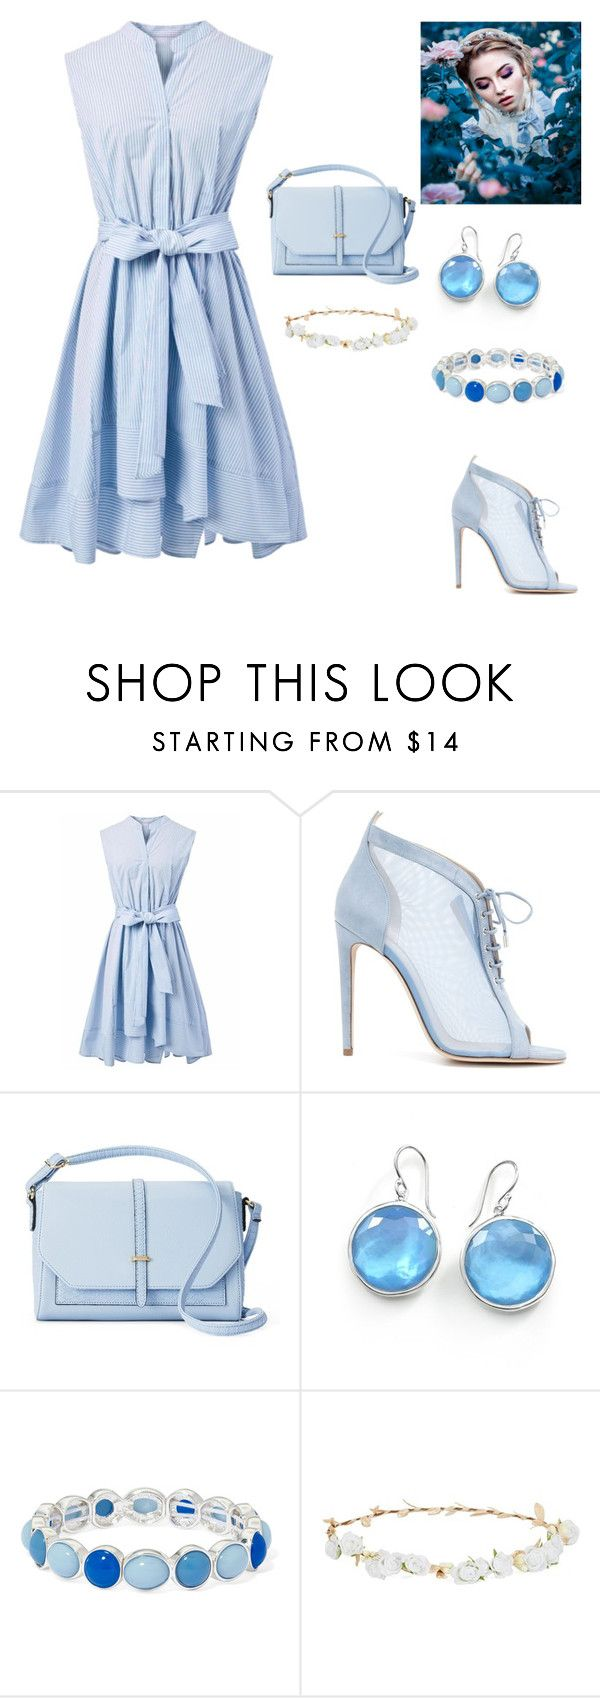 """Untitled #35"" by maidasabic12 ❤ liked on Polyvore featuring Chicwish, Chloe Gosselin, Apt. 9, Ippolita, Liz Claiborne and Robert Rose"